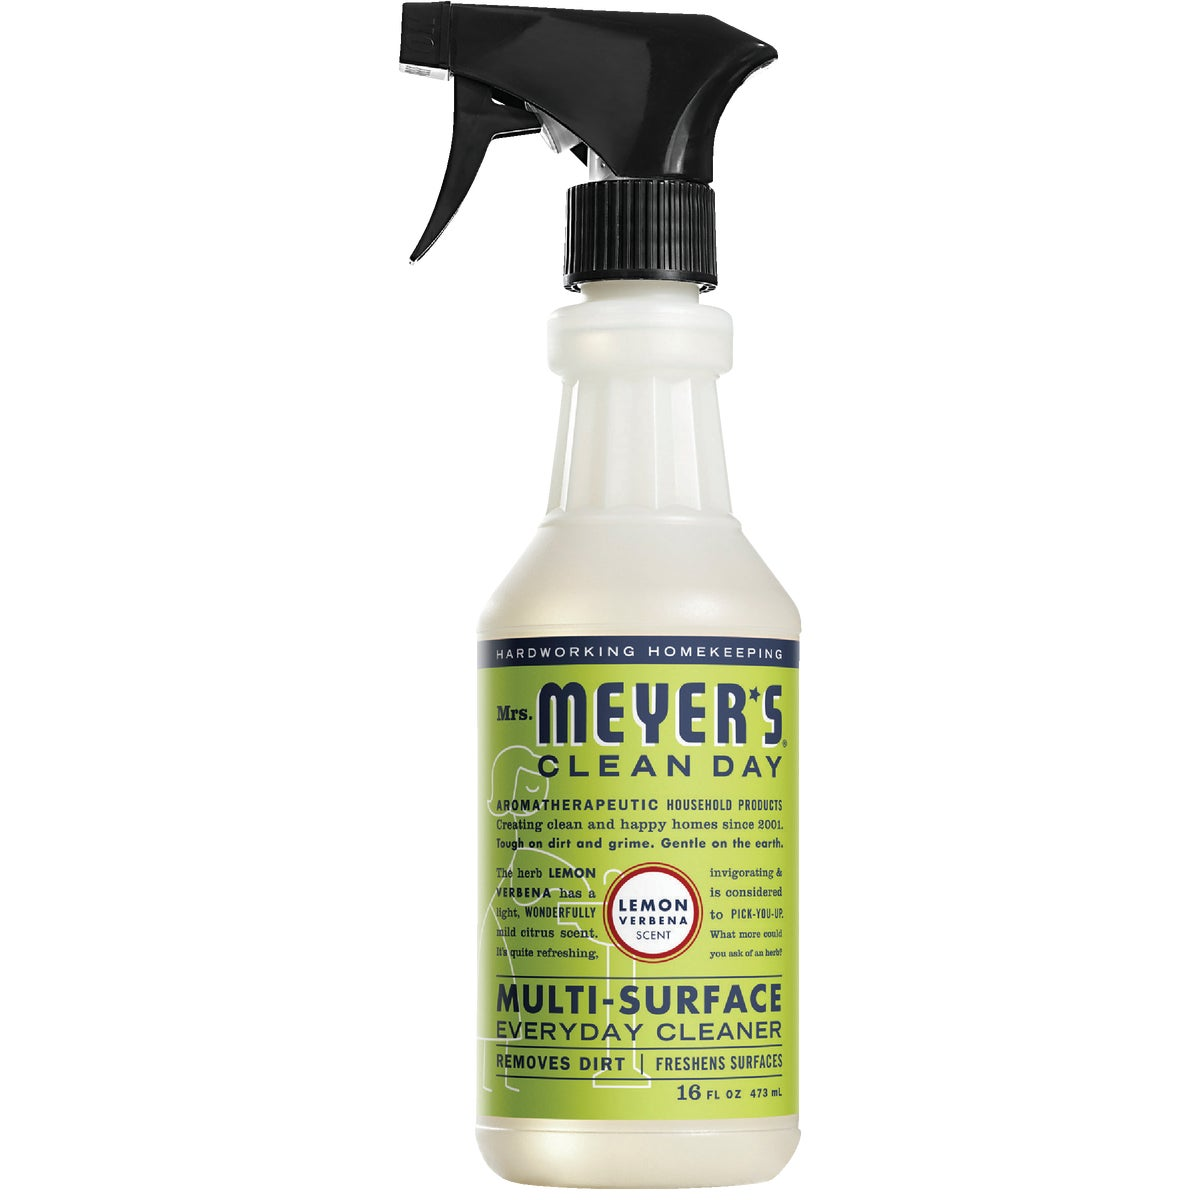 LEMON COUNTERTOP CLEANER - 12118 by Mrs Meyers Clean Day